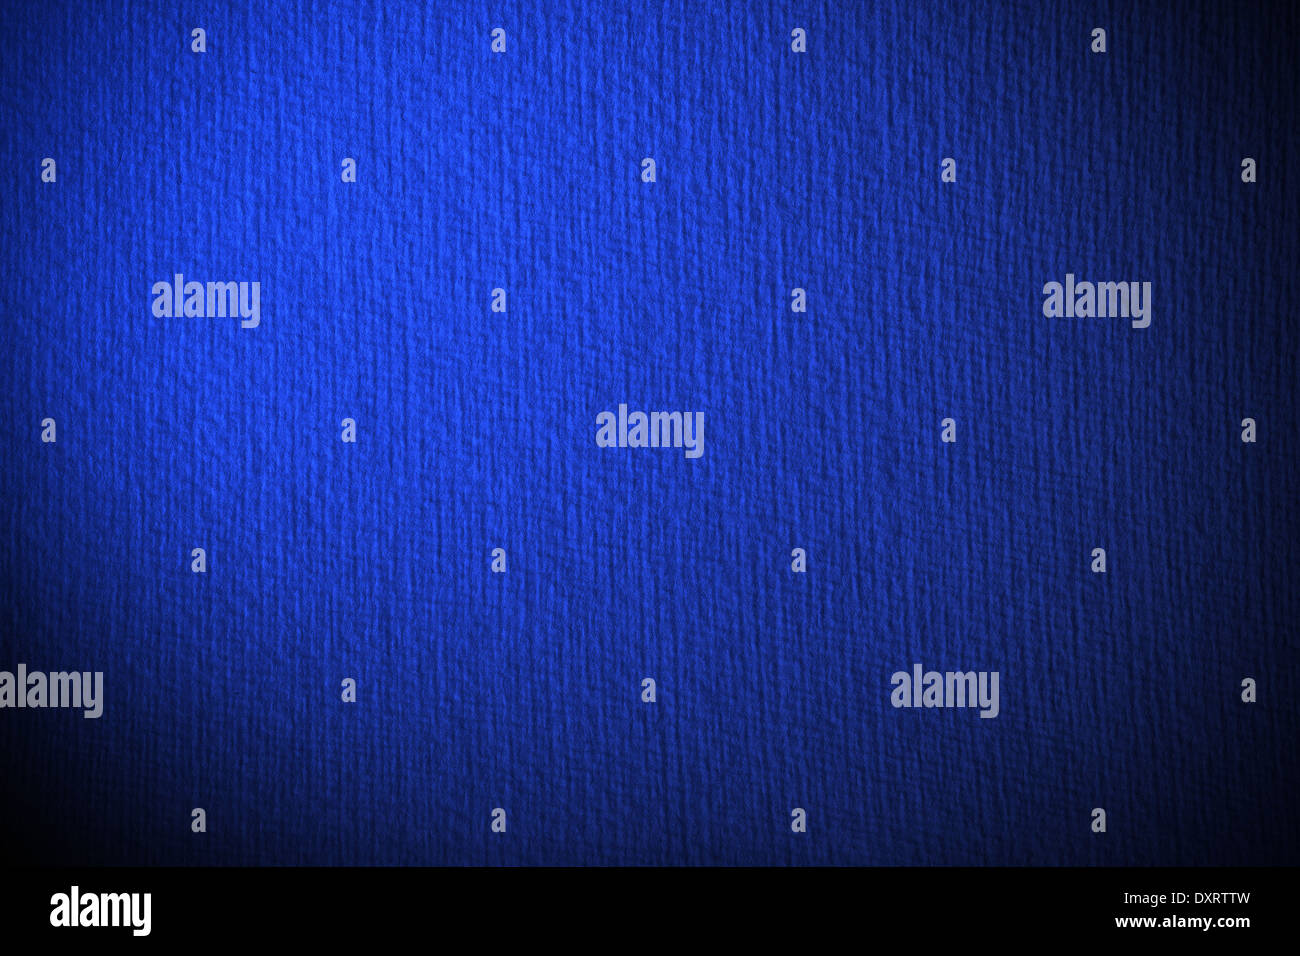 blue paper background or rough pattern cardboard texture - Stock Image